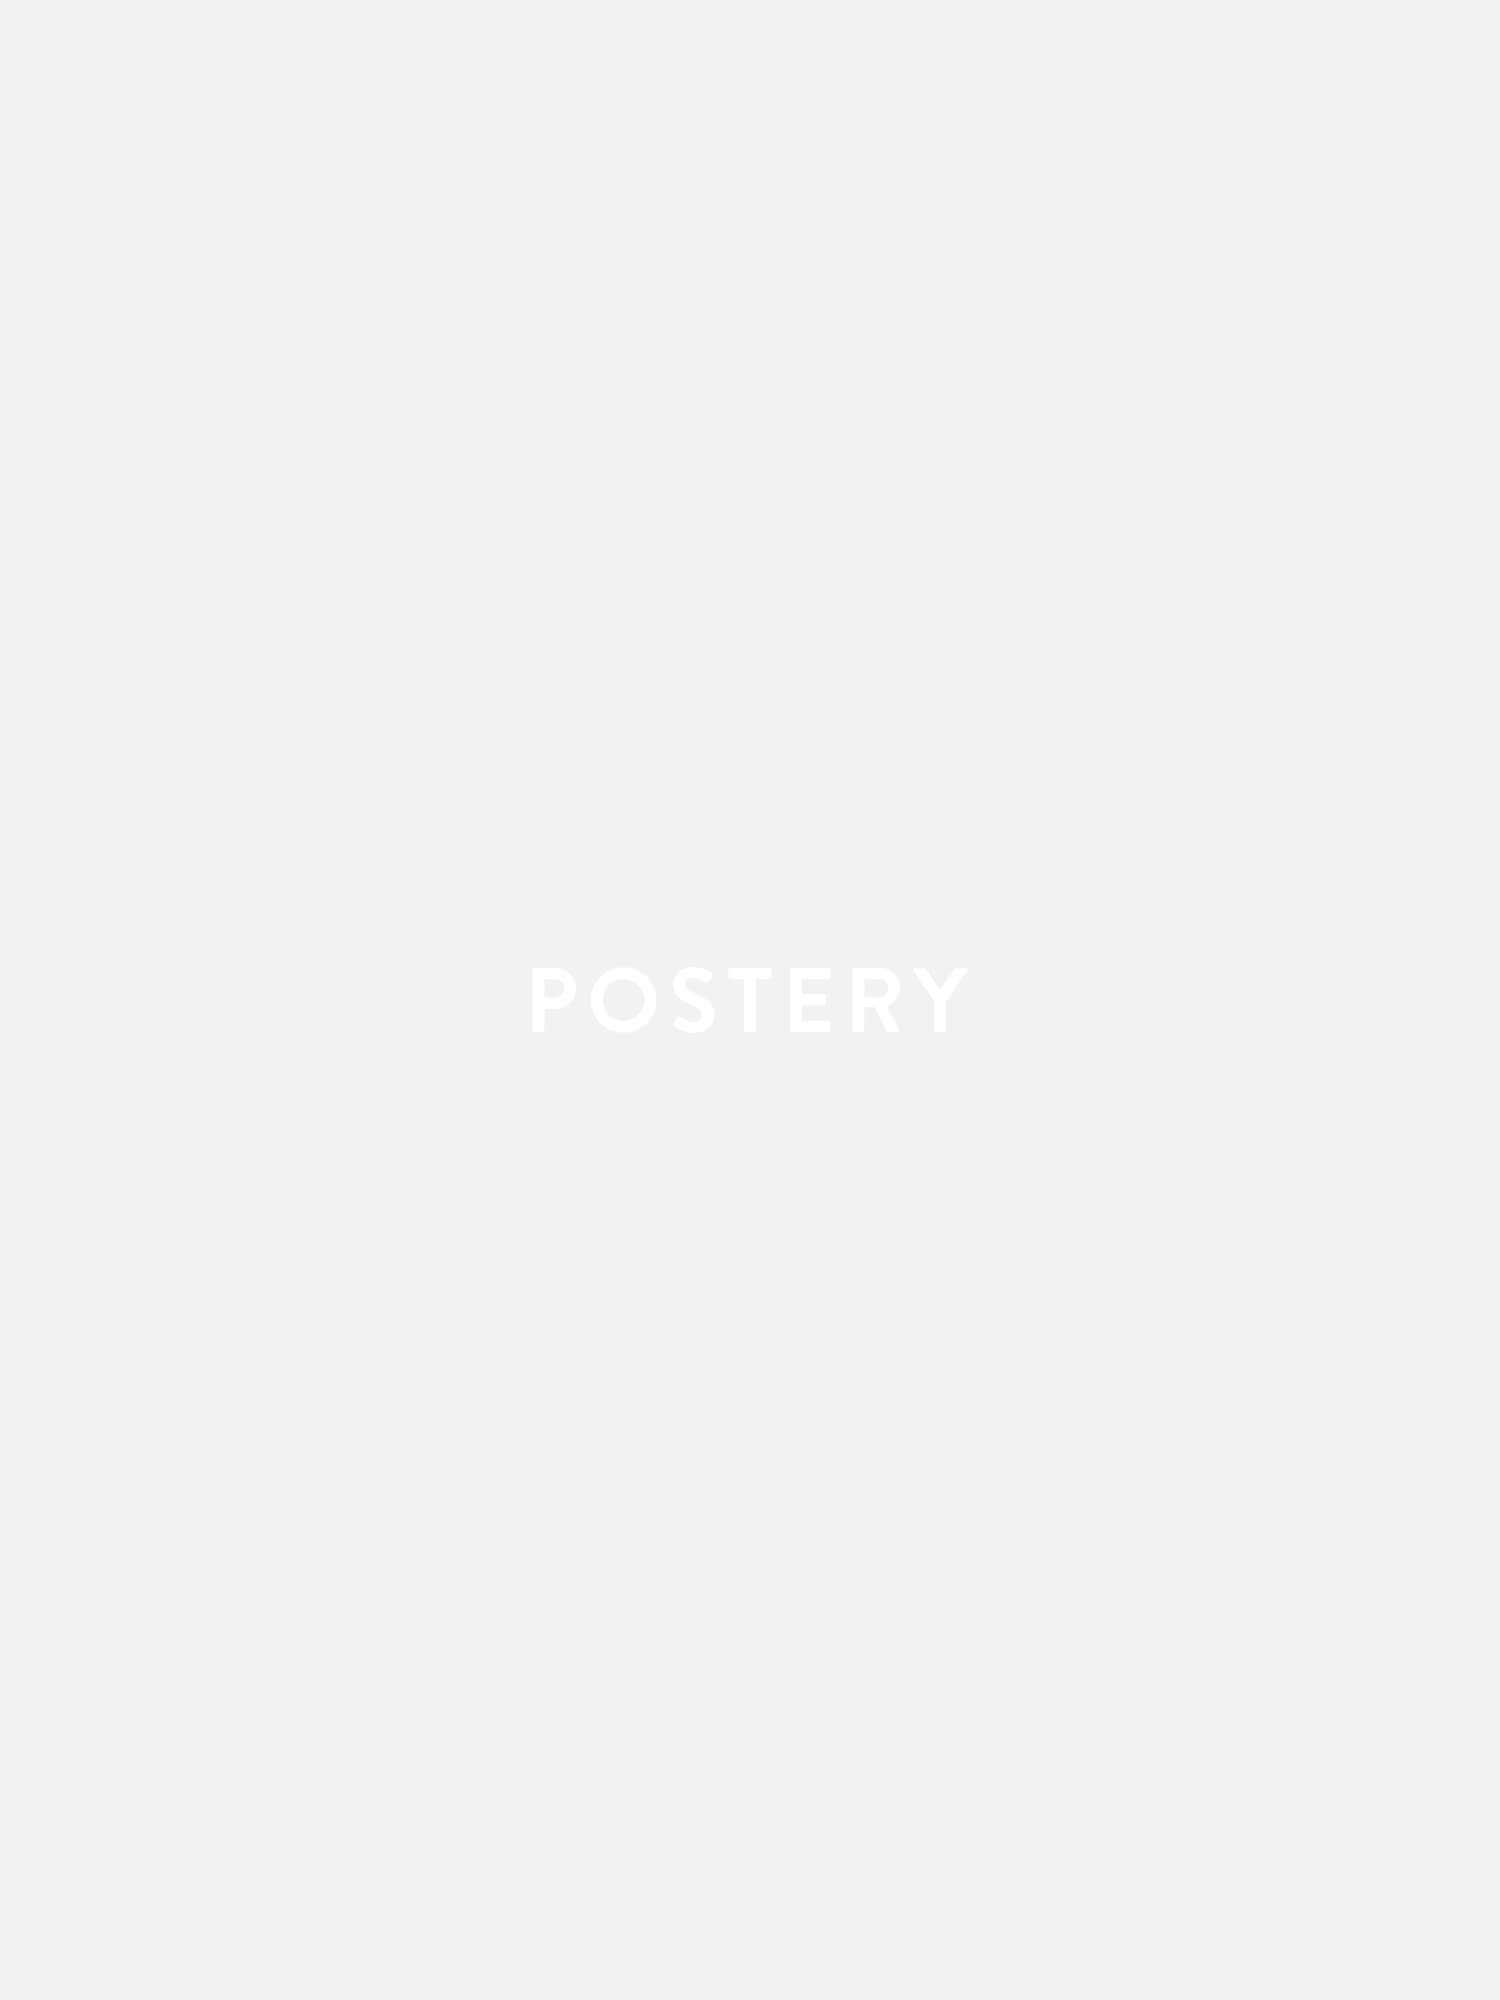 Pomegranate no.2 Poster